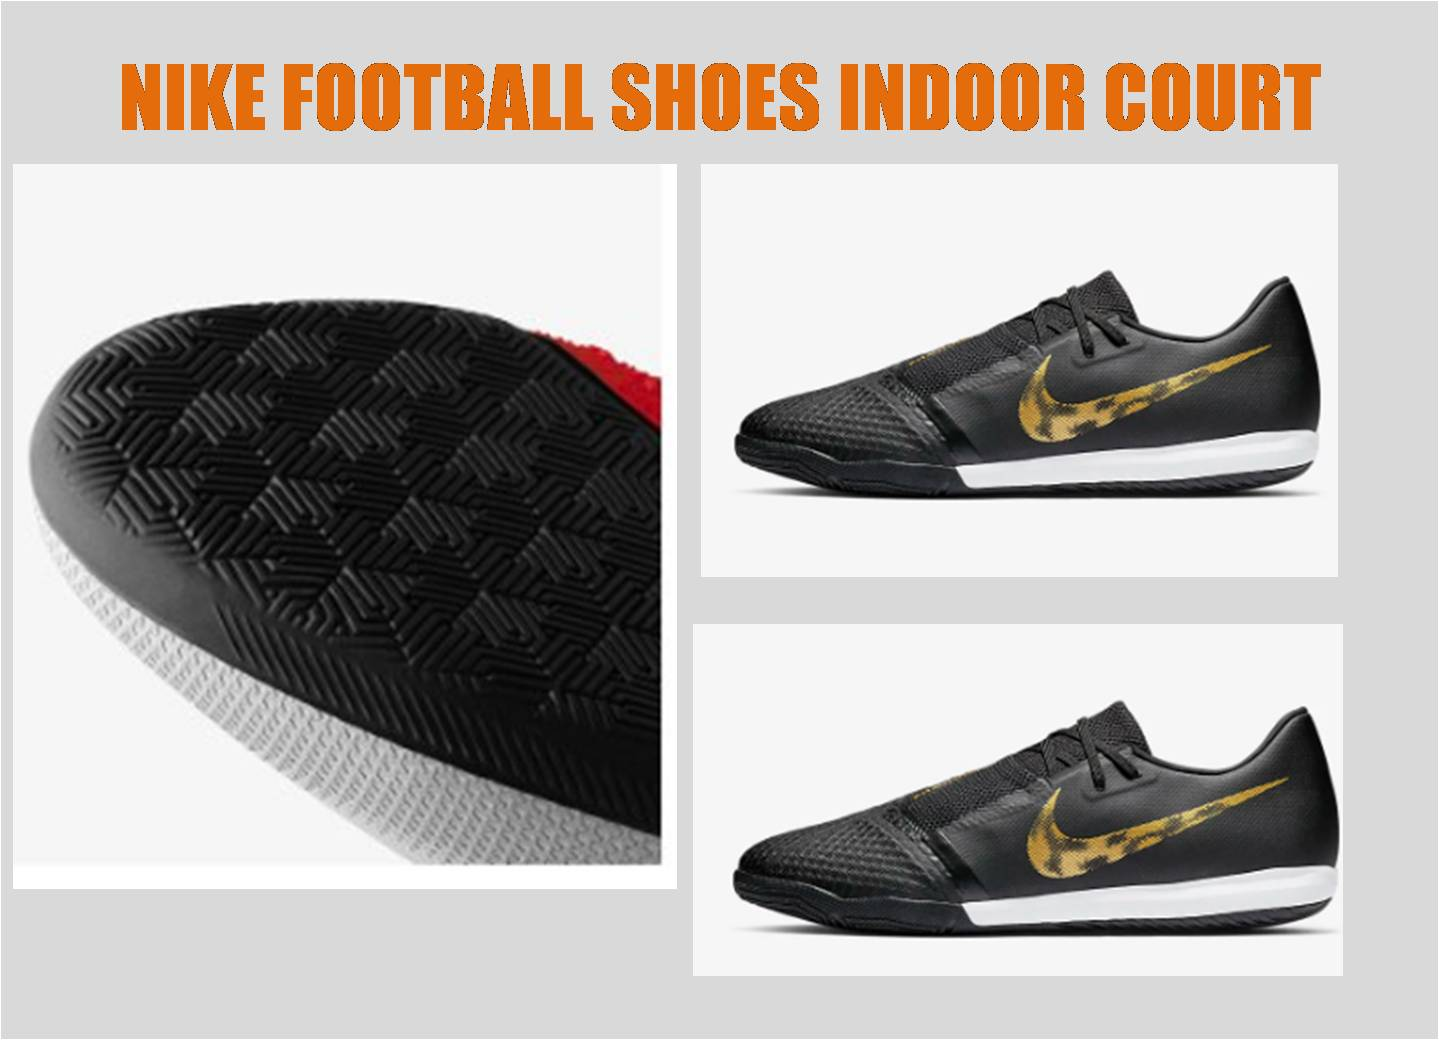 NIKE_FOOTBALL_SHOES_FOR_INDOOR_COURT